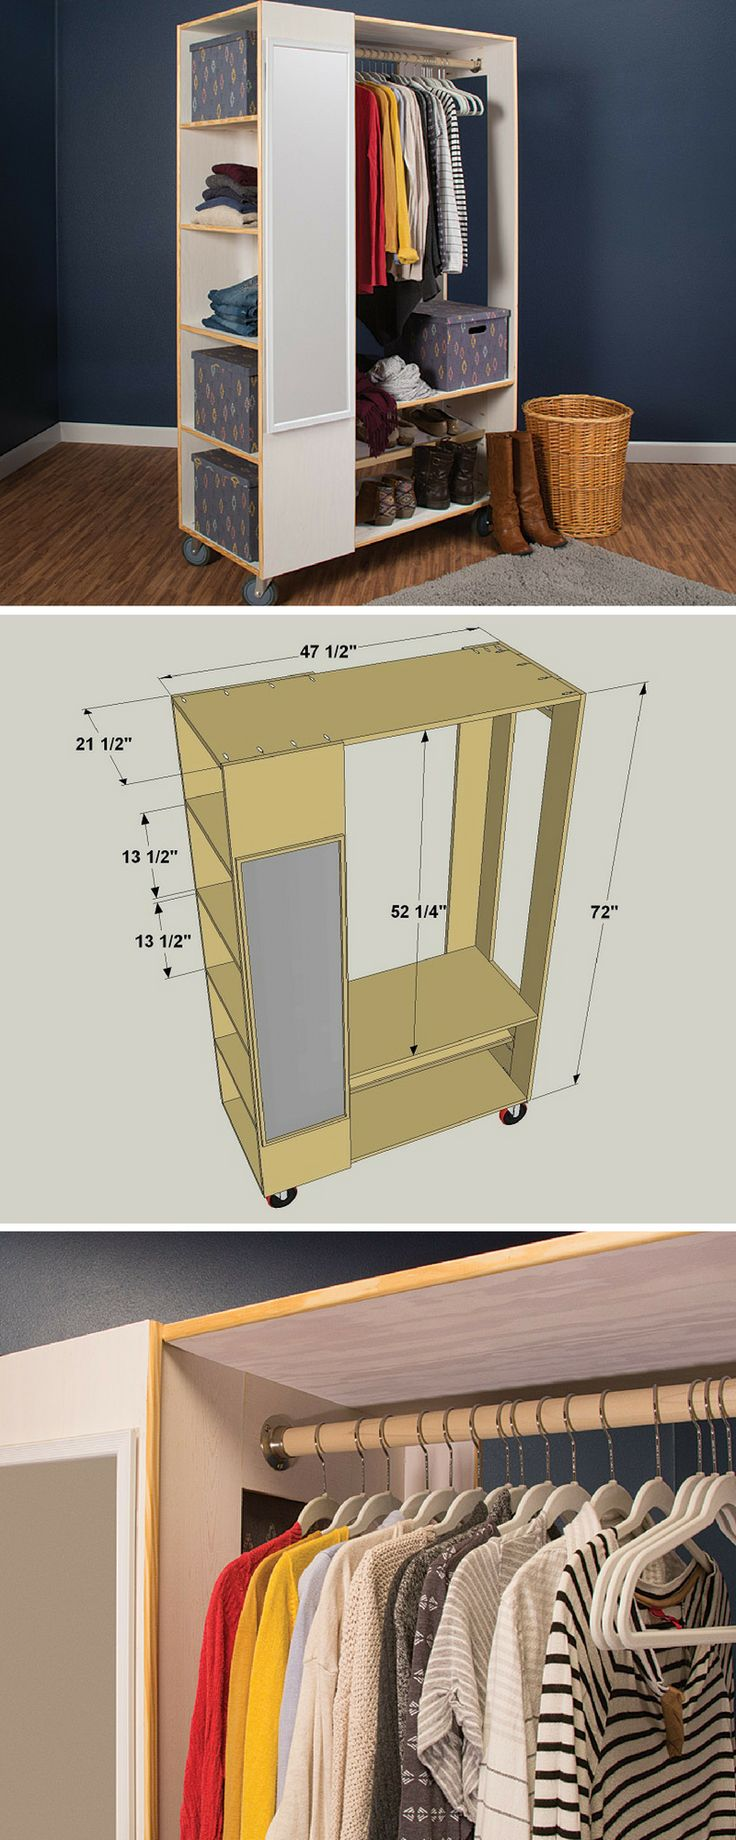 How to Build a Freestanding Closet System | Free project plans on buildsomething.com | Closets are kind of like potato chips. No matter how many you have, it would always be great to have just one more. Of course, finding space for another closet is challenging, if not impossible. That's why this freestanding closet is great. It provides an extra closet anywhere you need one.